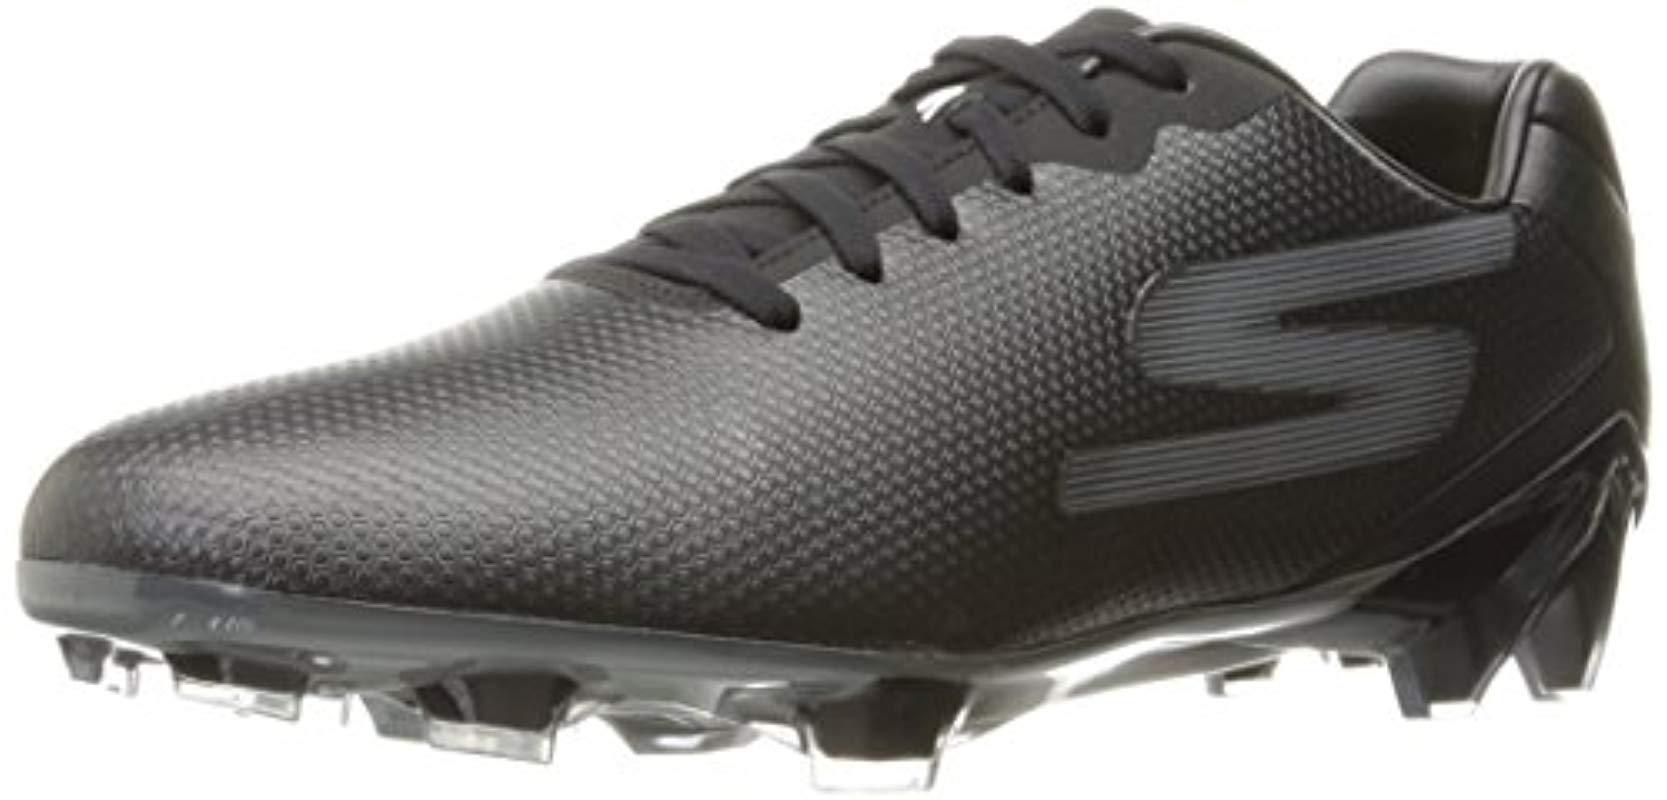 226bf5a5b5ed Skechers Performance Go Galaxy Fg Soccer Cleat Shoe in Black for Men ...